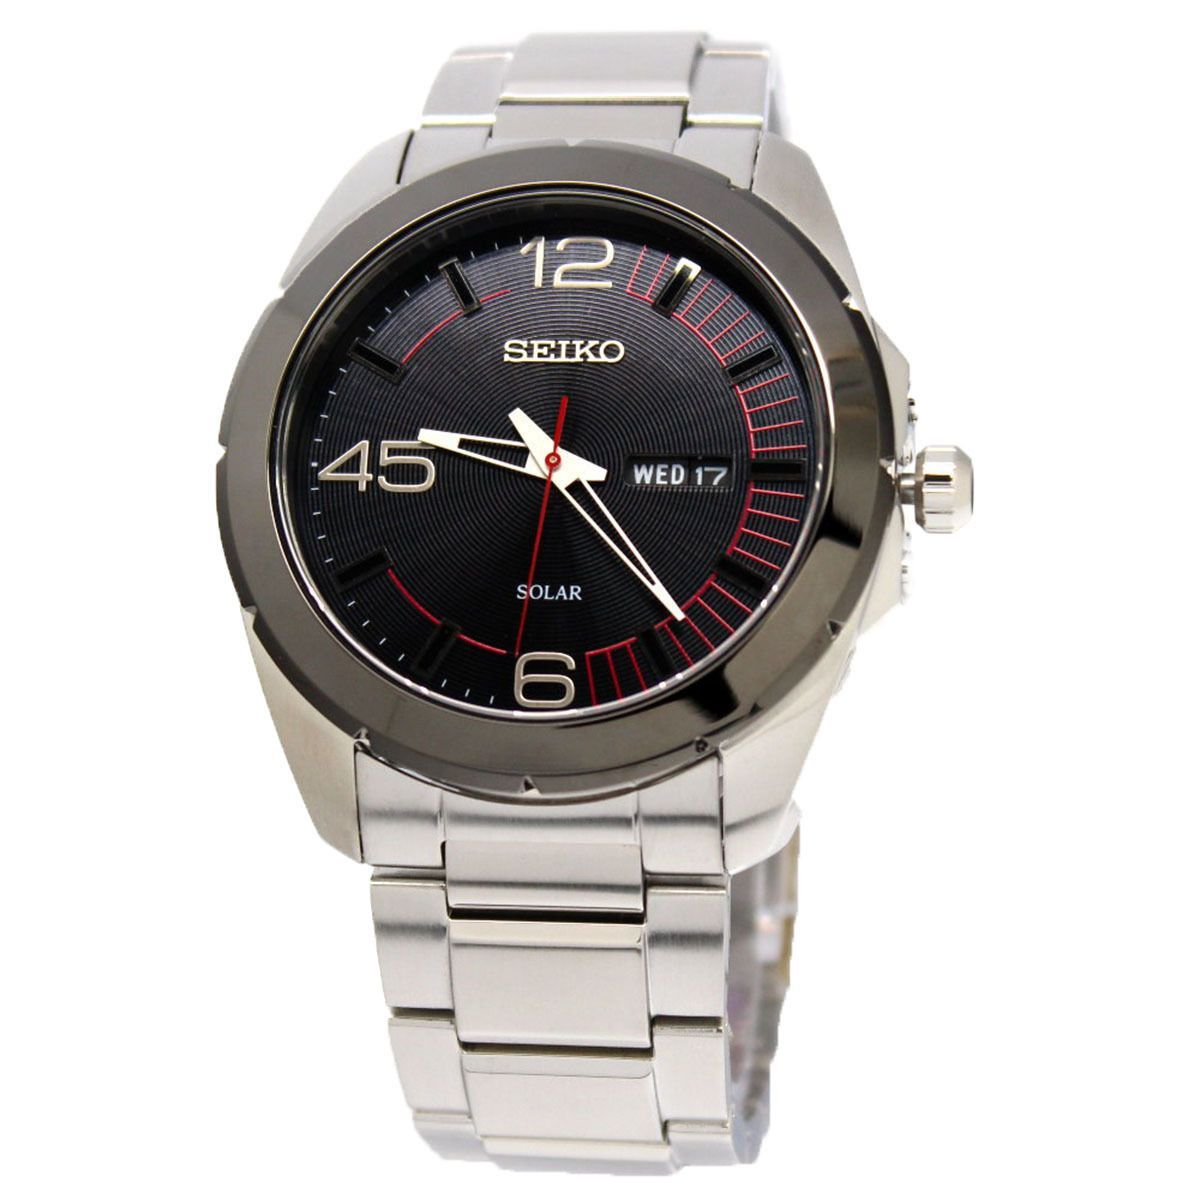 Seiko Mens Analog Business Solar Watch Sne285p1 Products Srpb01